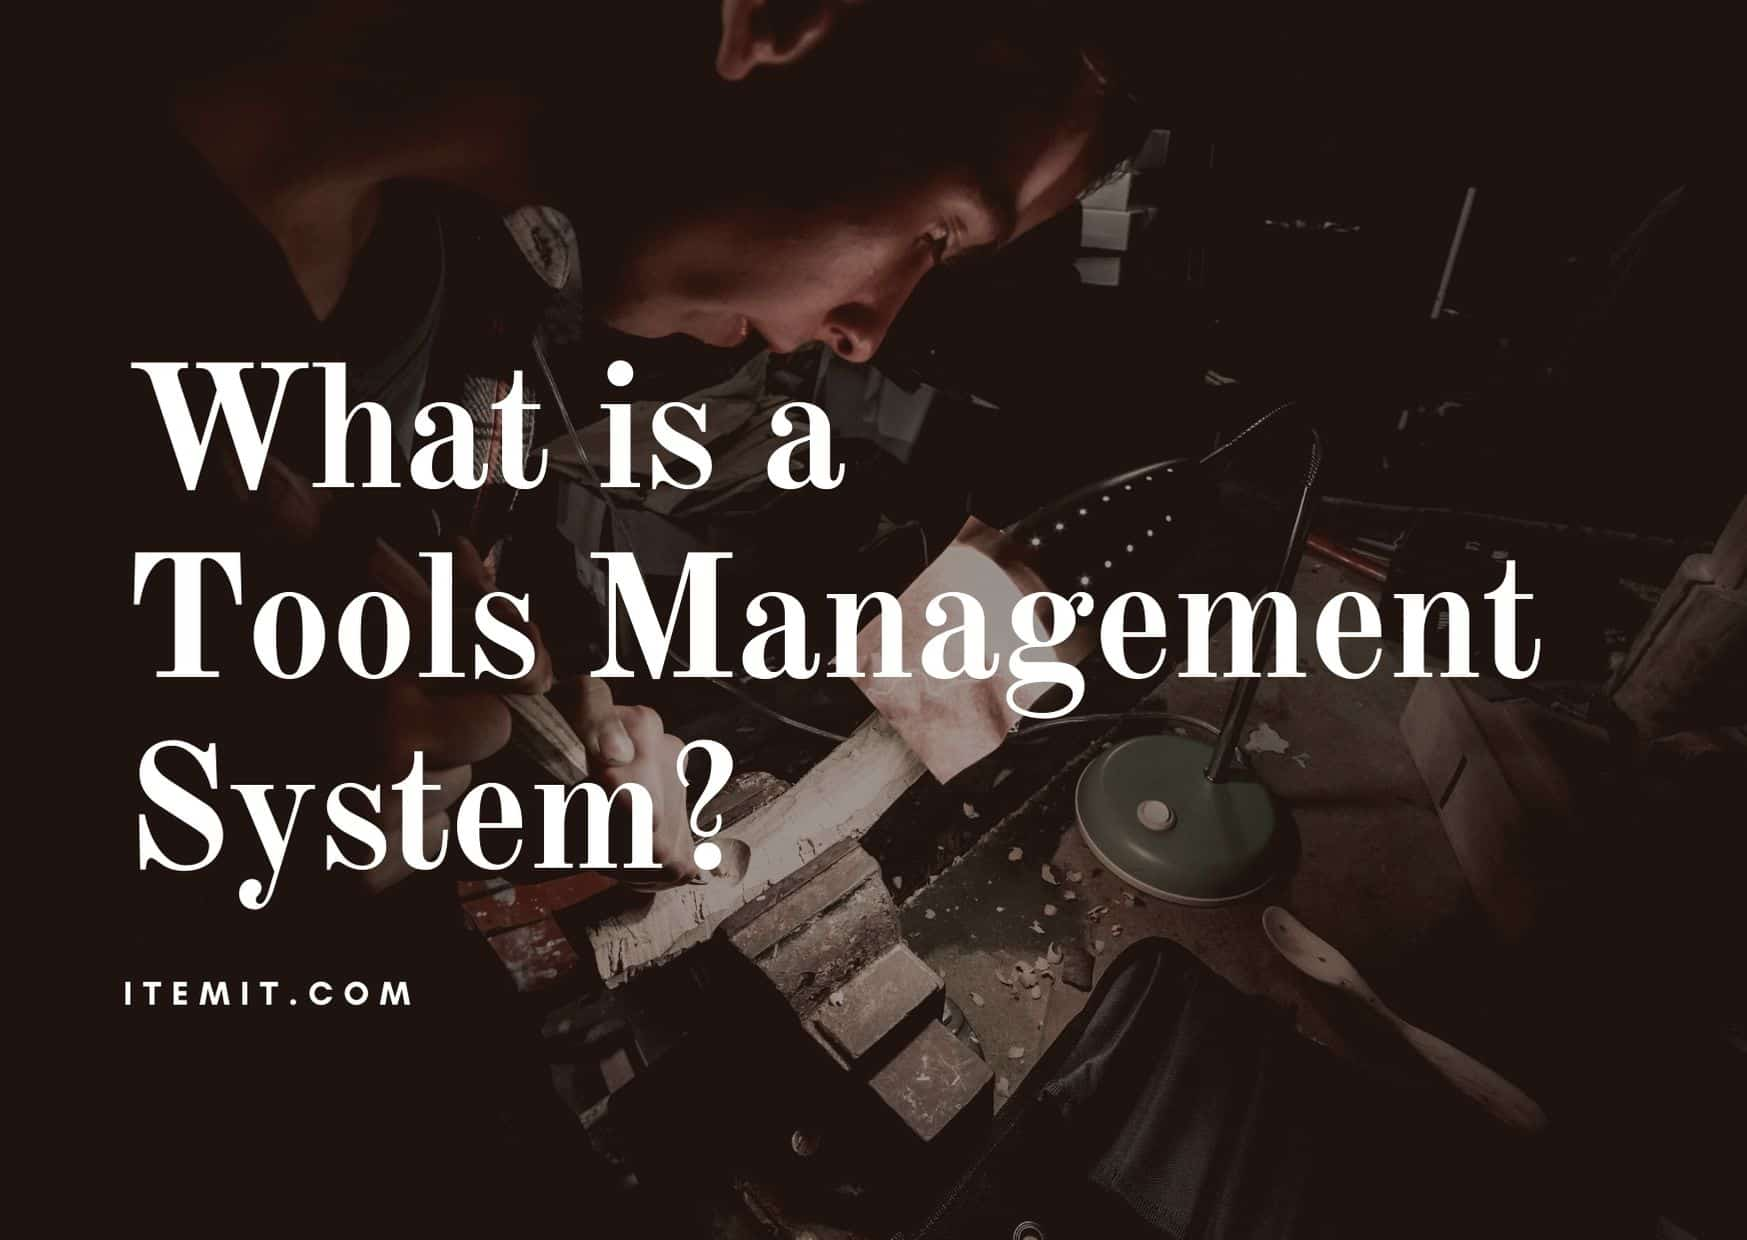 tool tracking and what is a tools management system?